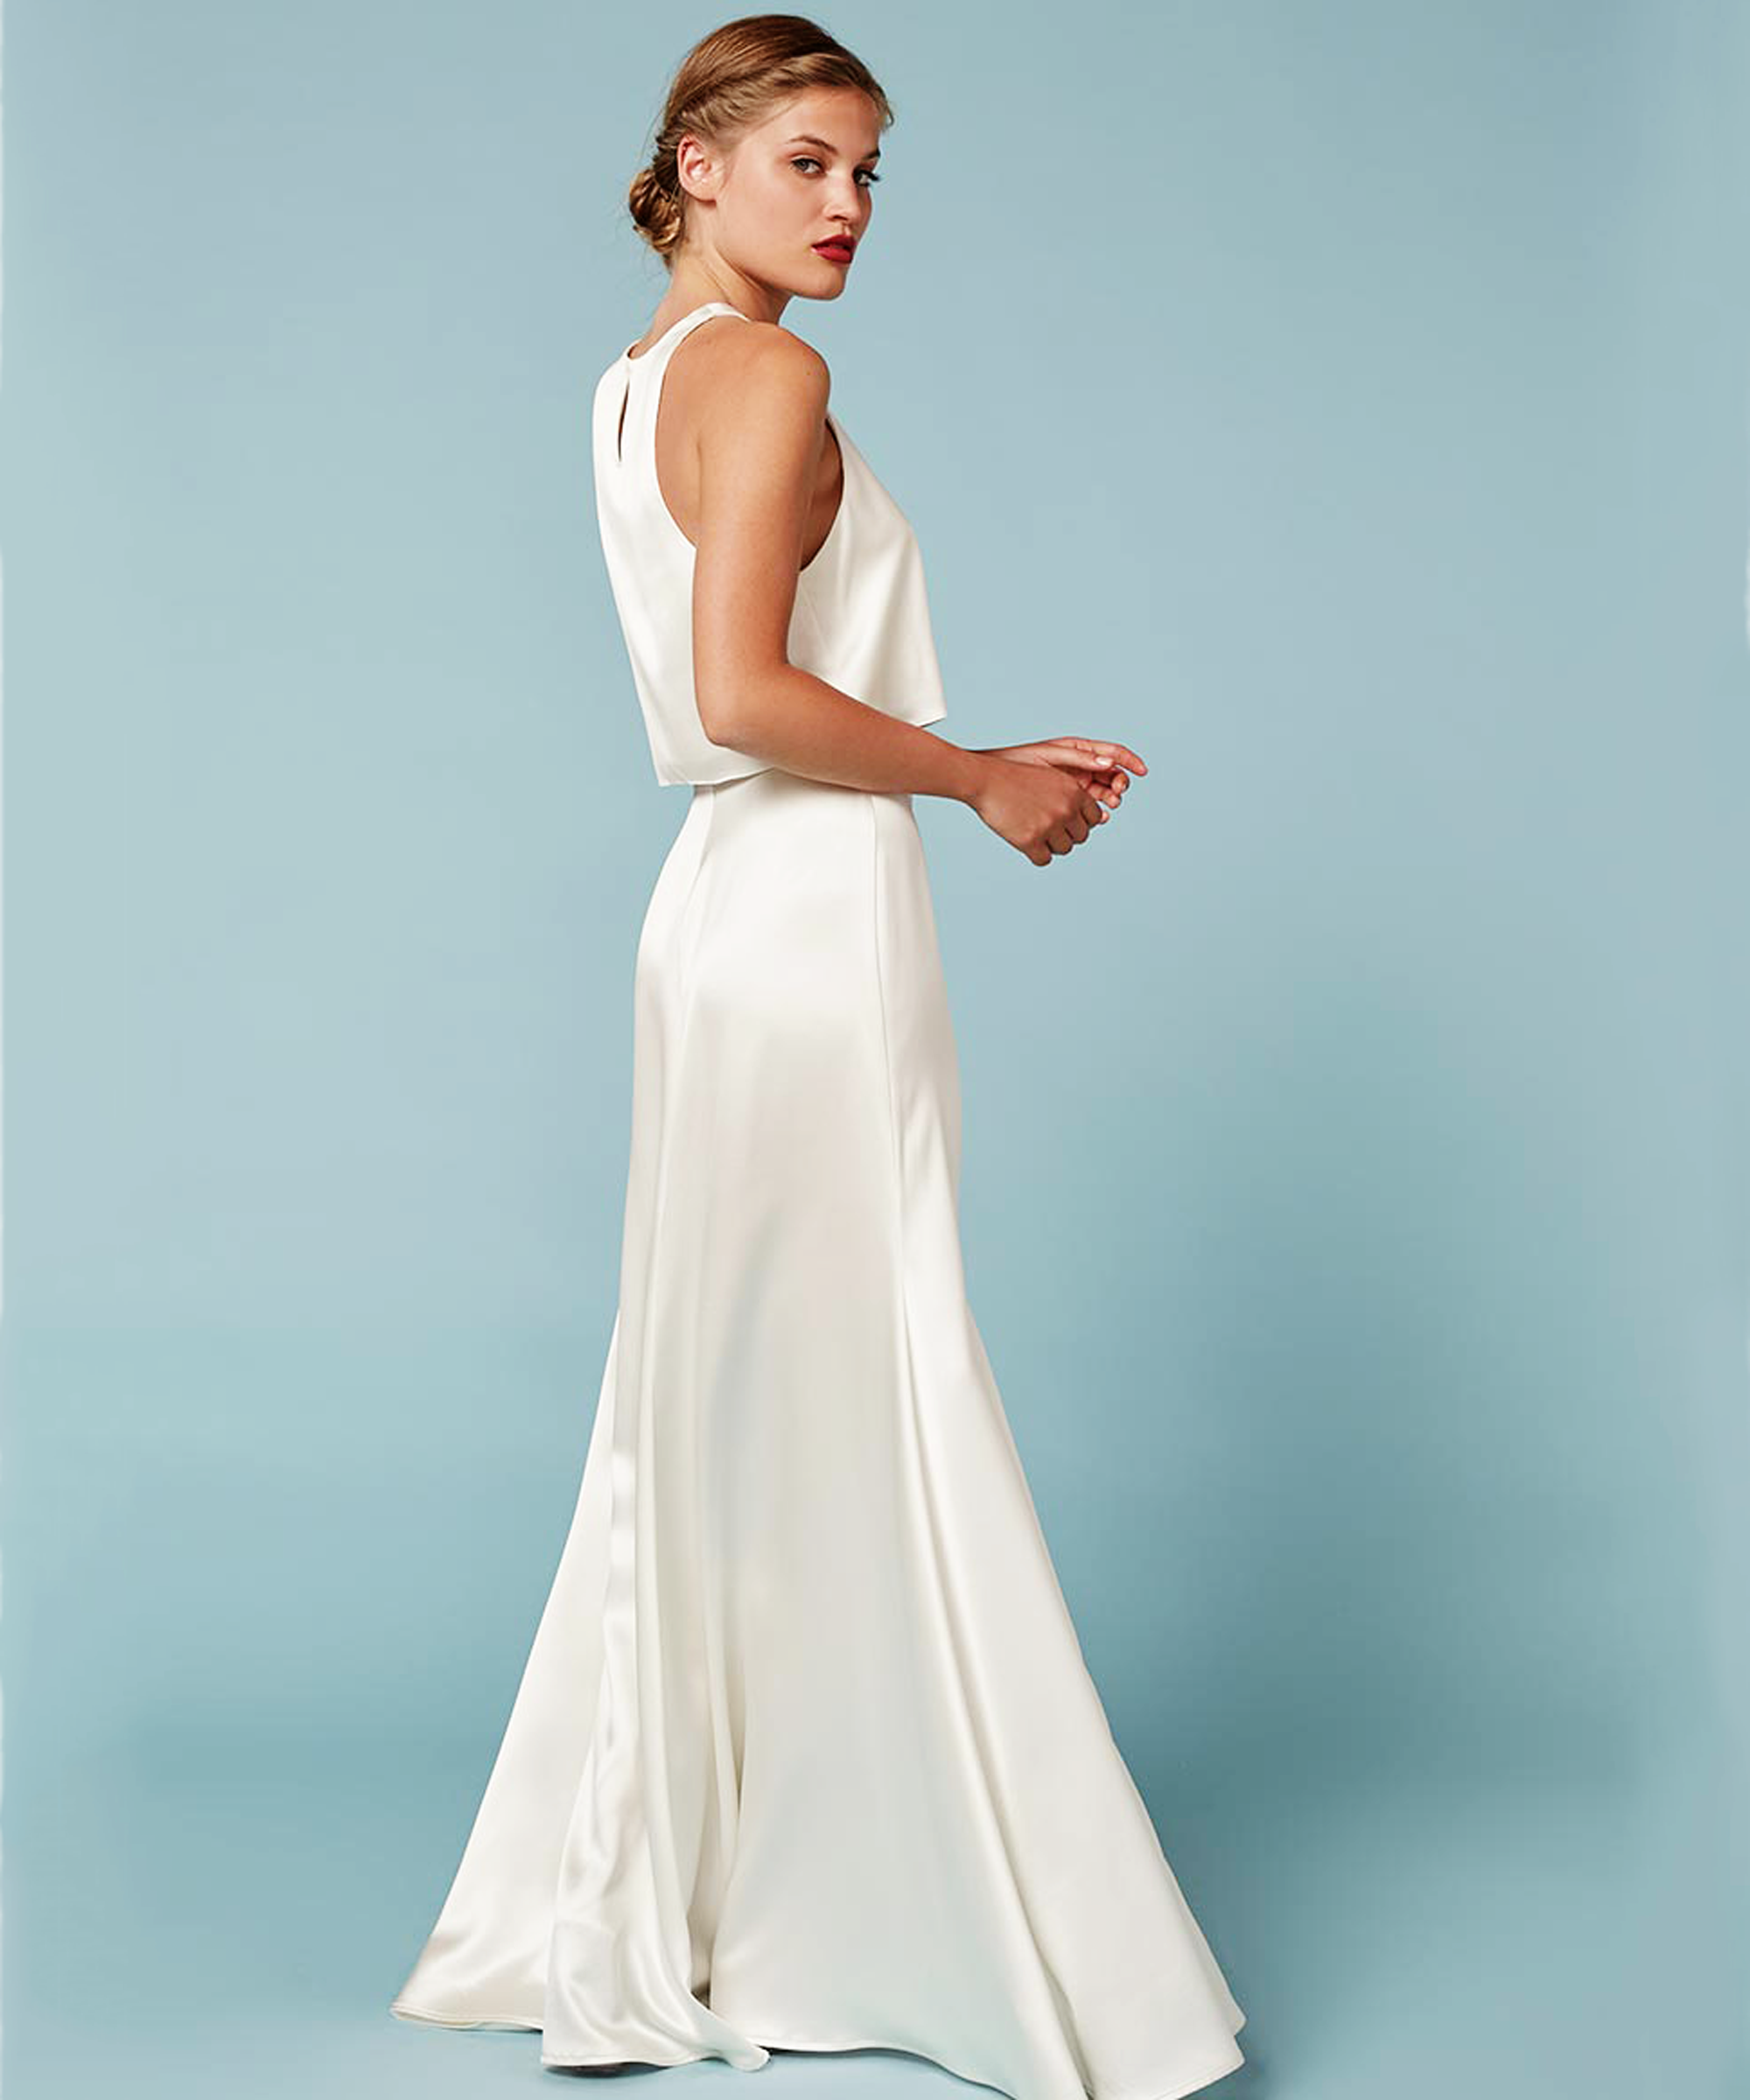 Reformation Wedding Dress Affordable Dresses